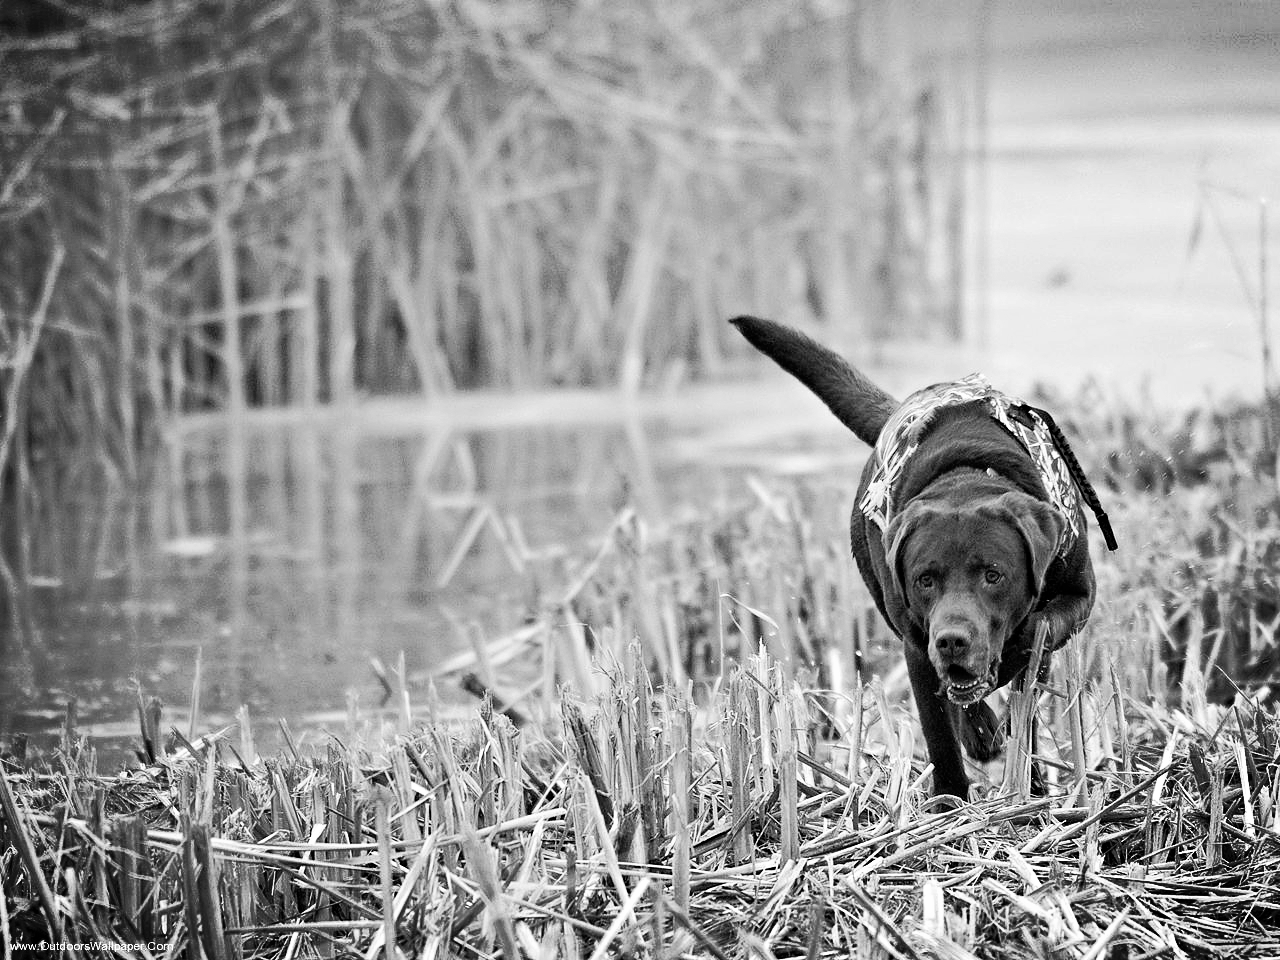 duck-hunting-wallpaper-5.jpg